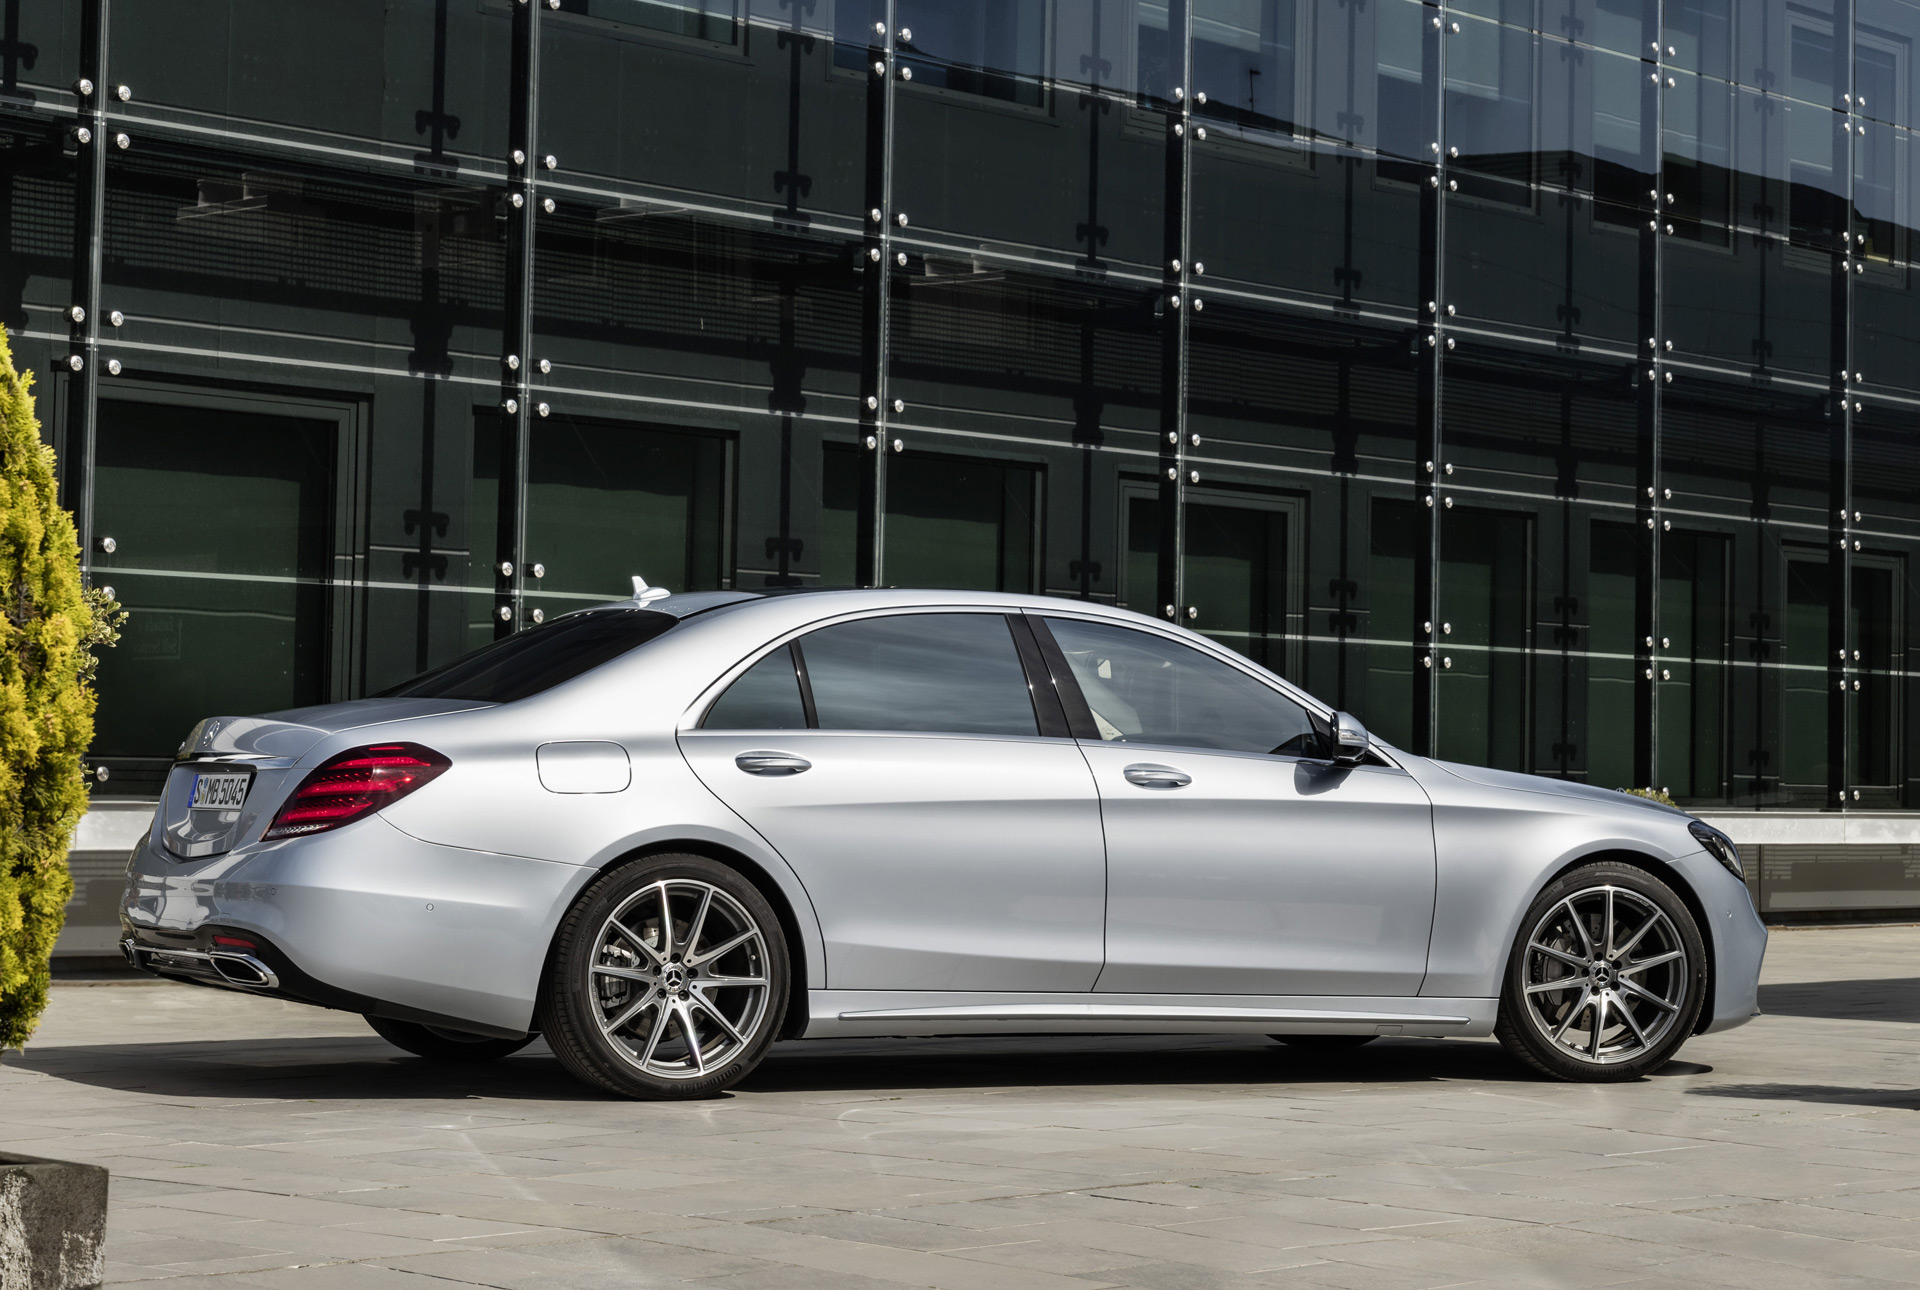 Mercedes benz details suite of active safety features for Mercedes benz s class features